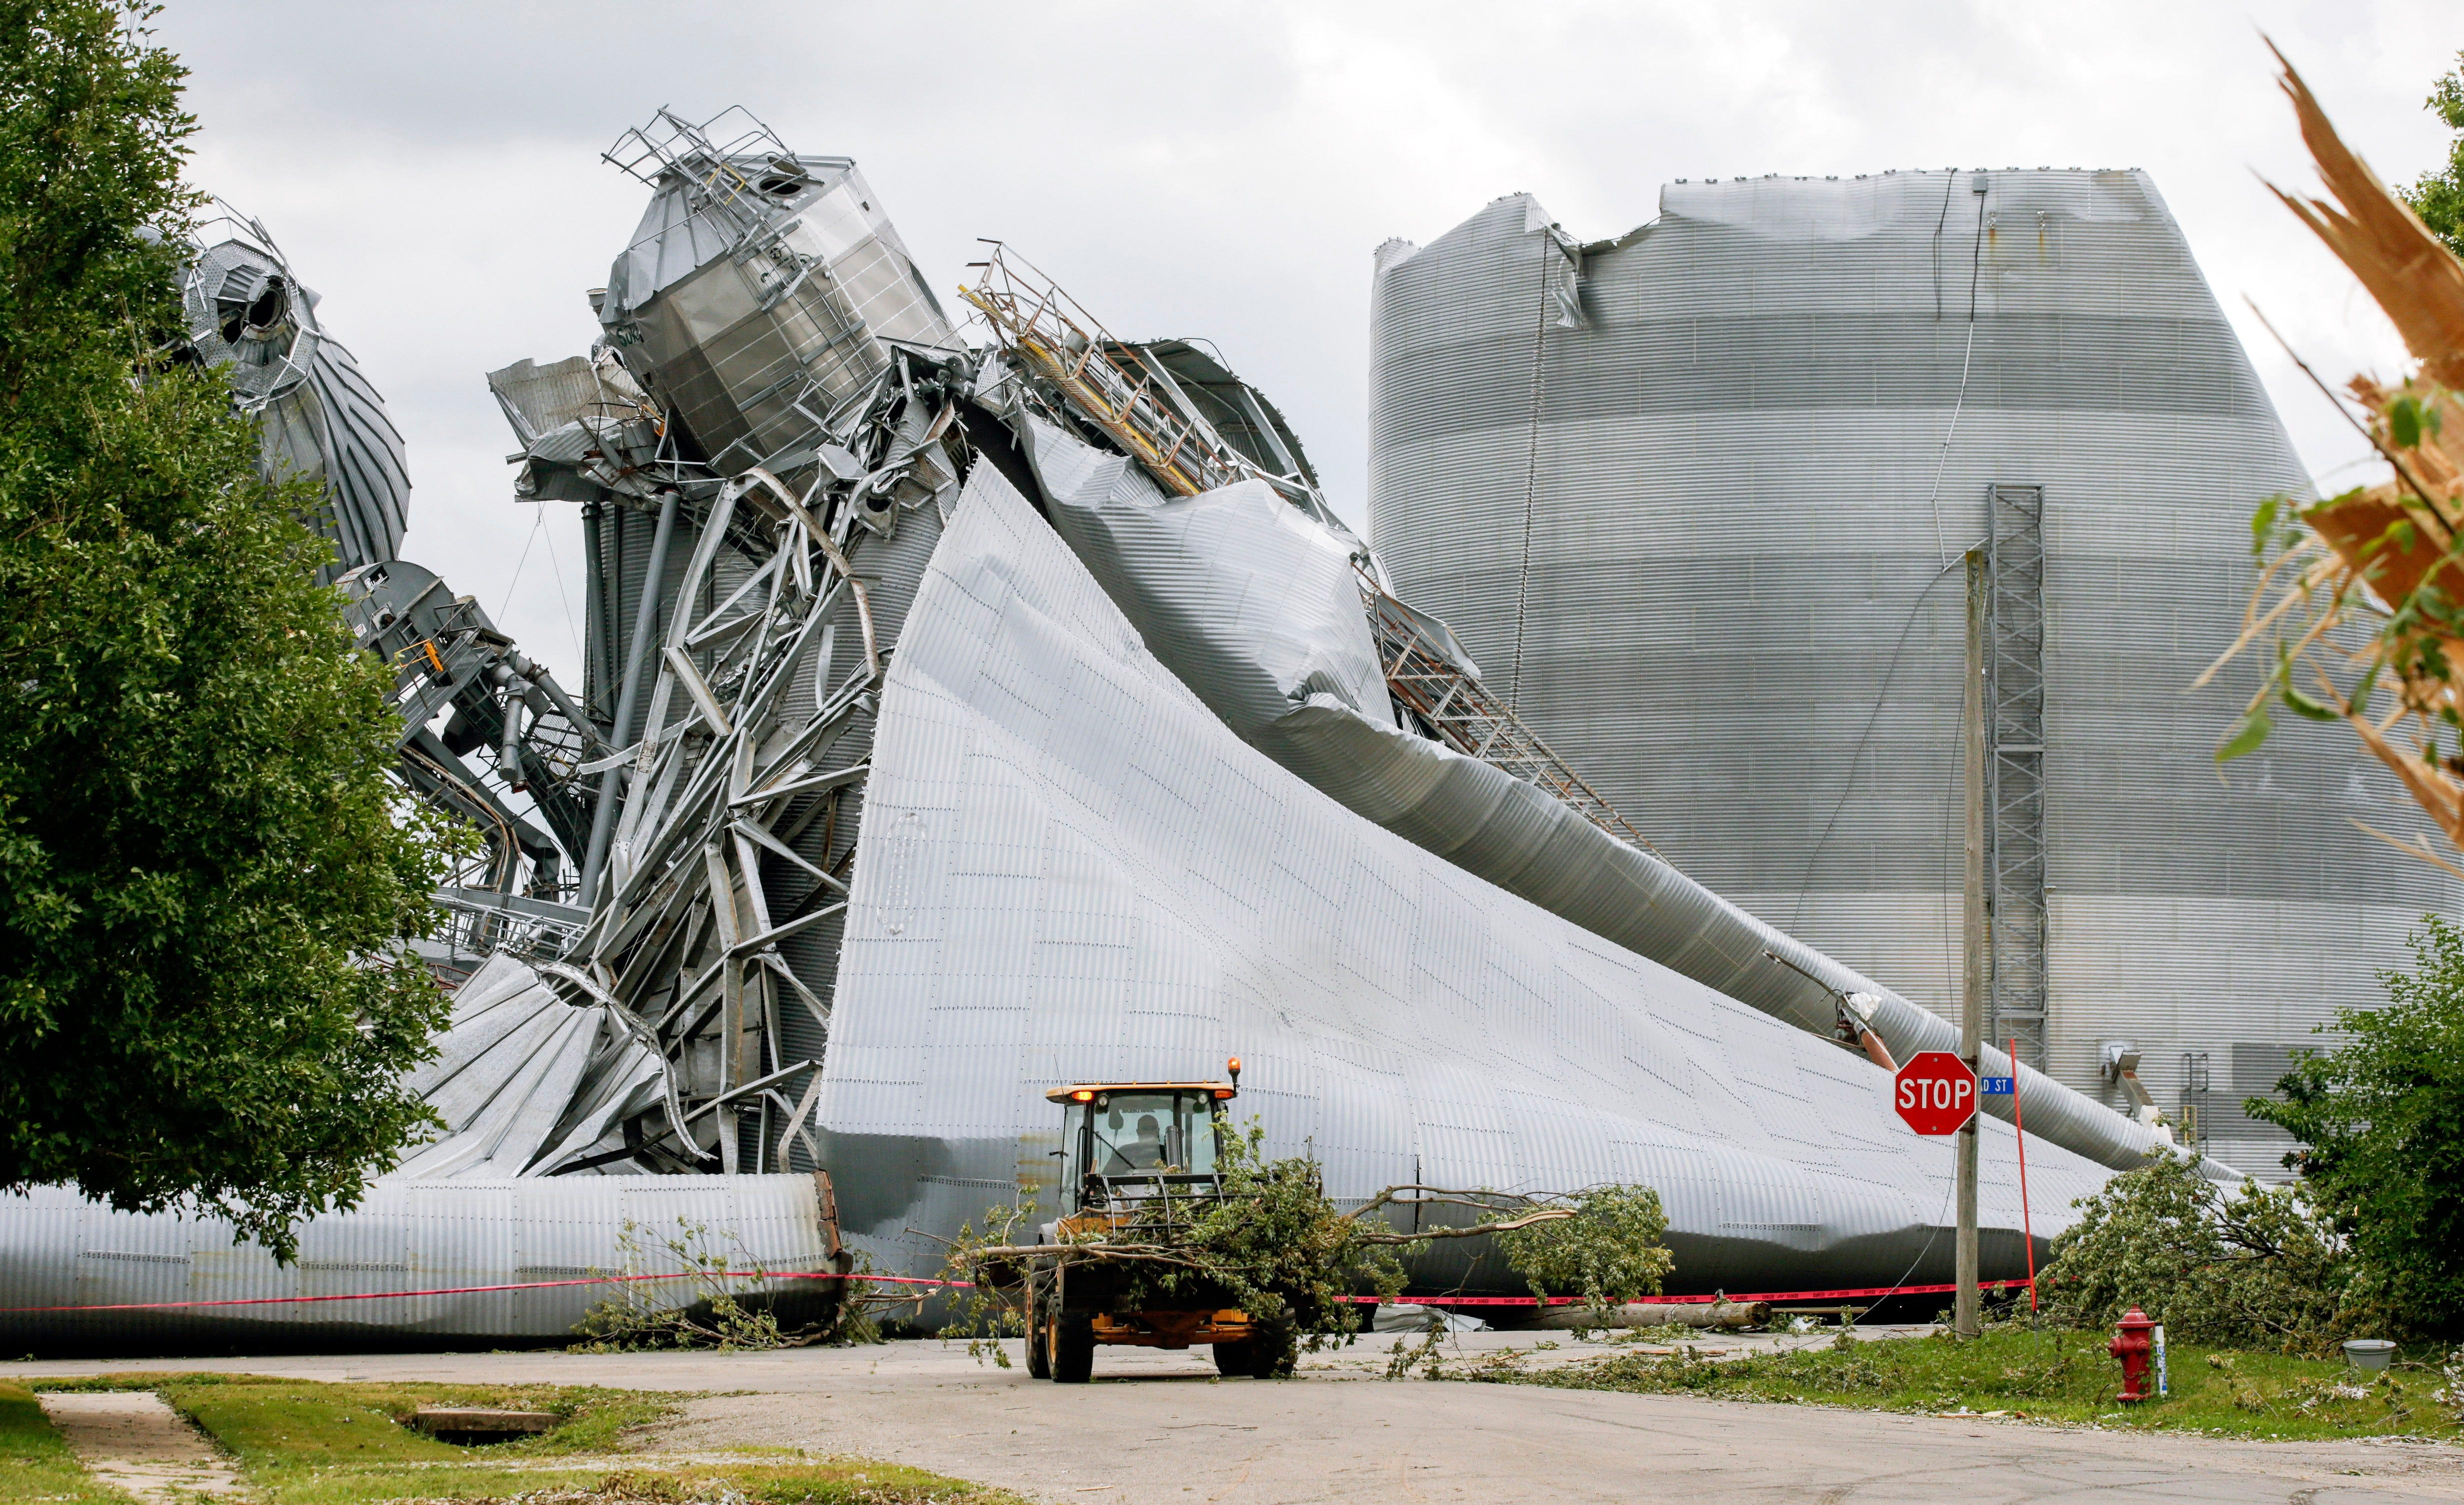 Iowans grapple with aftermath of Monday's deadly derecho, 'a disaster that we have never seen'